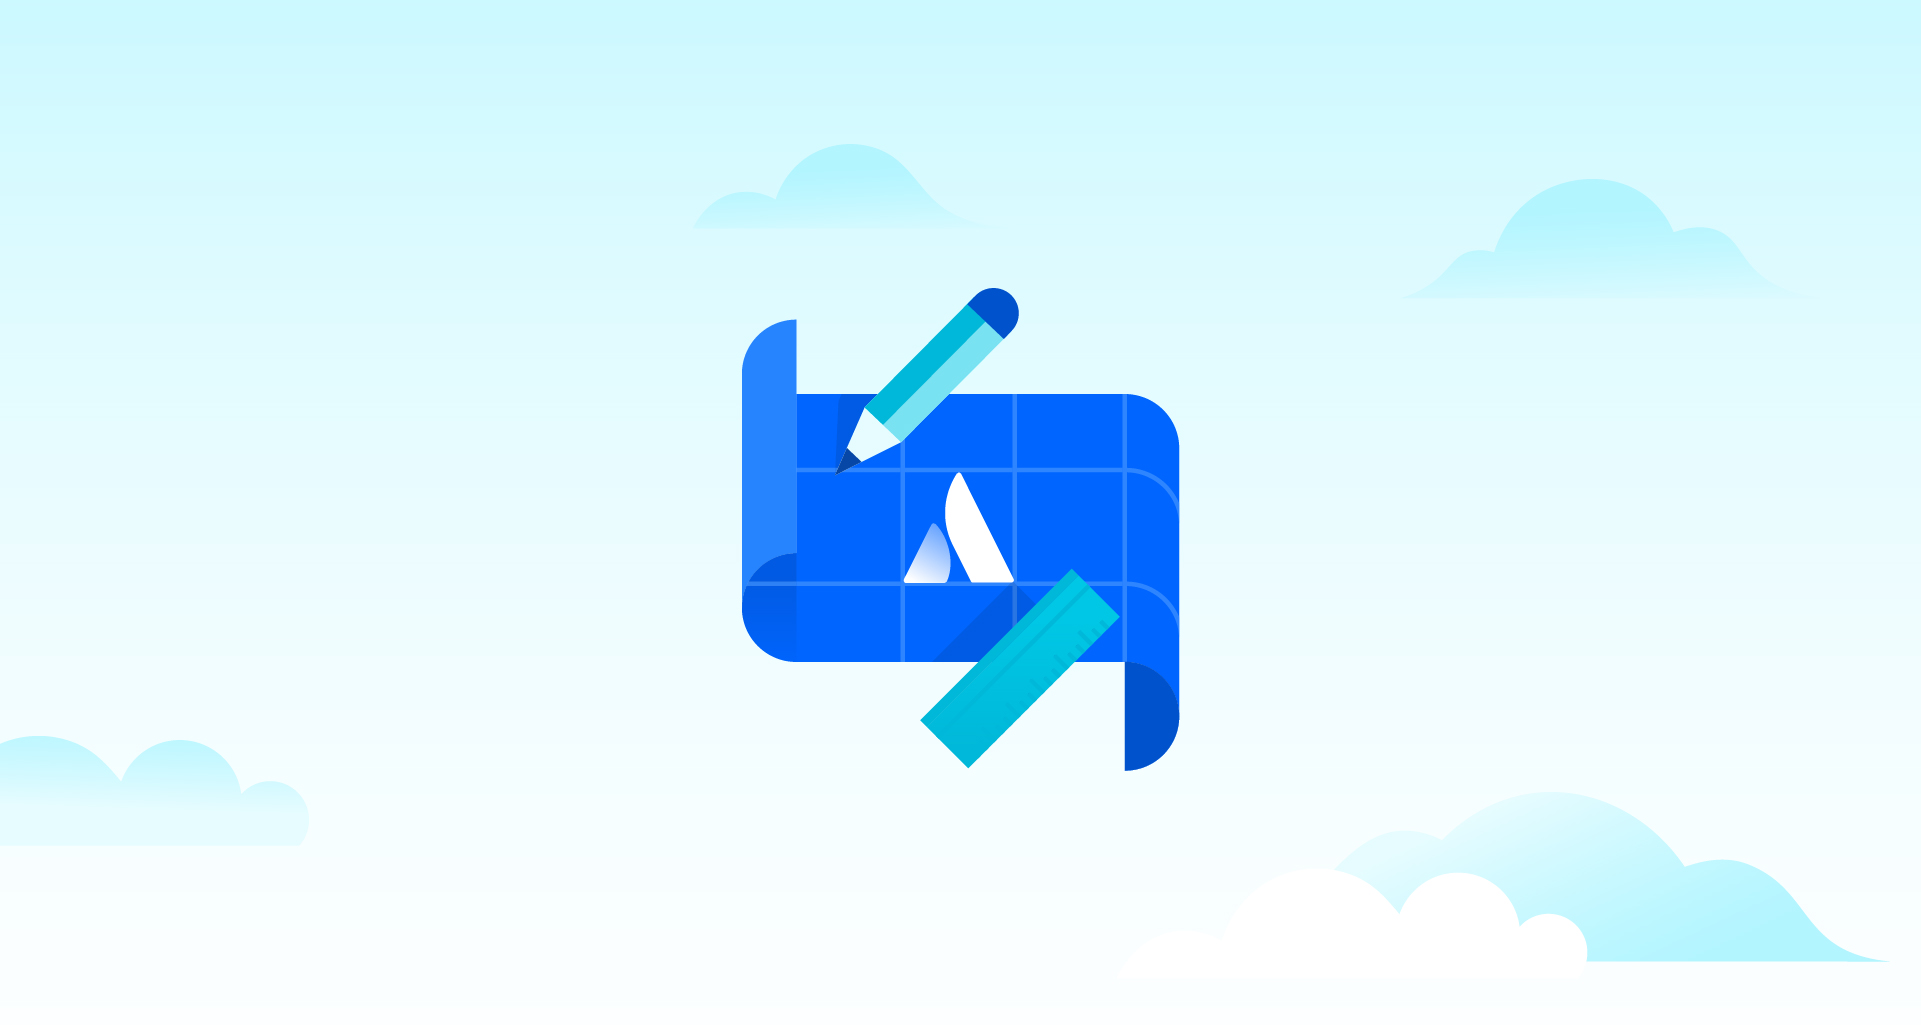 Atlassian blueprint illustration